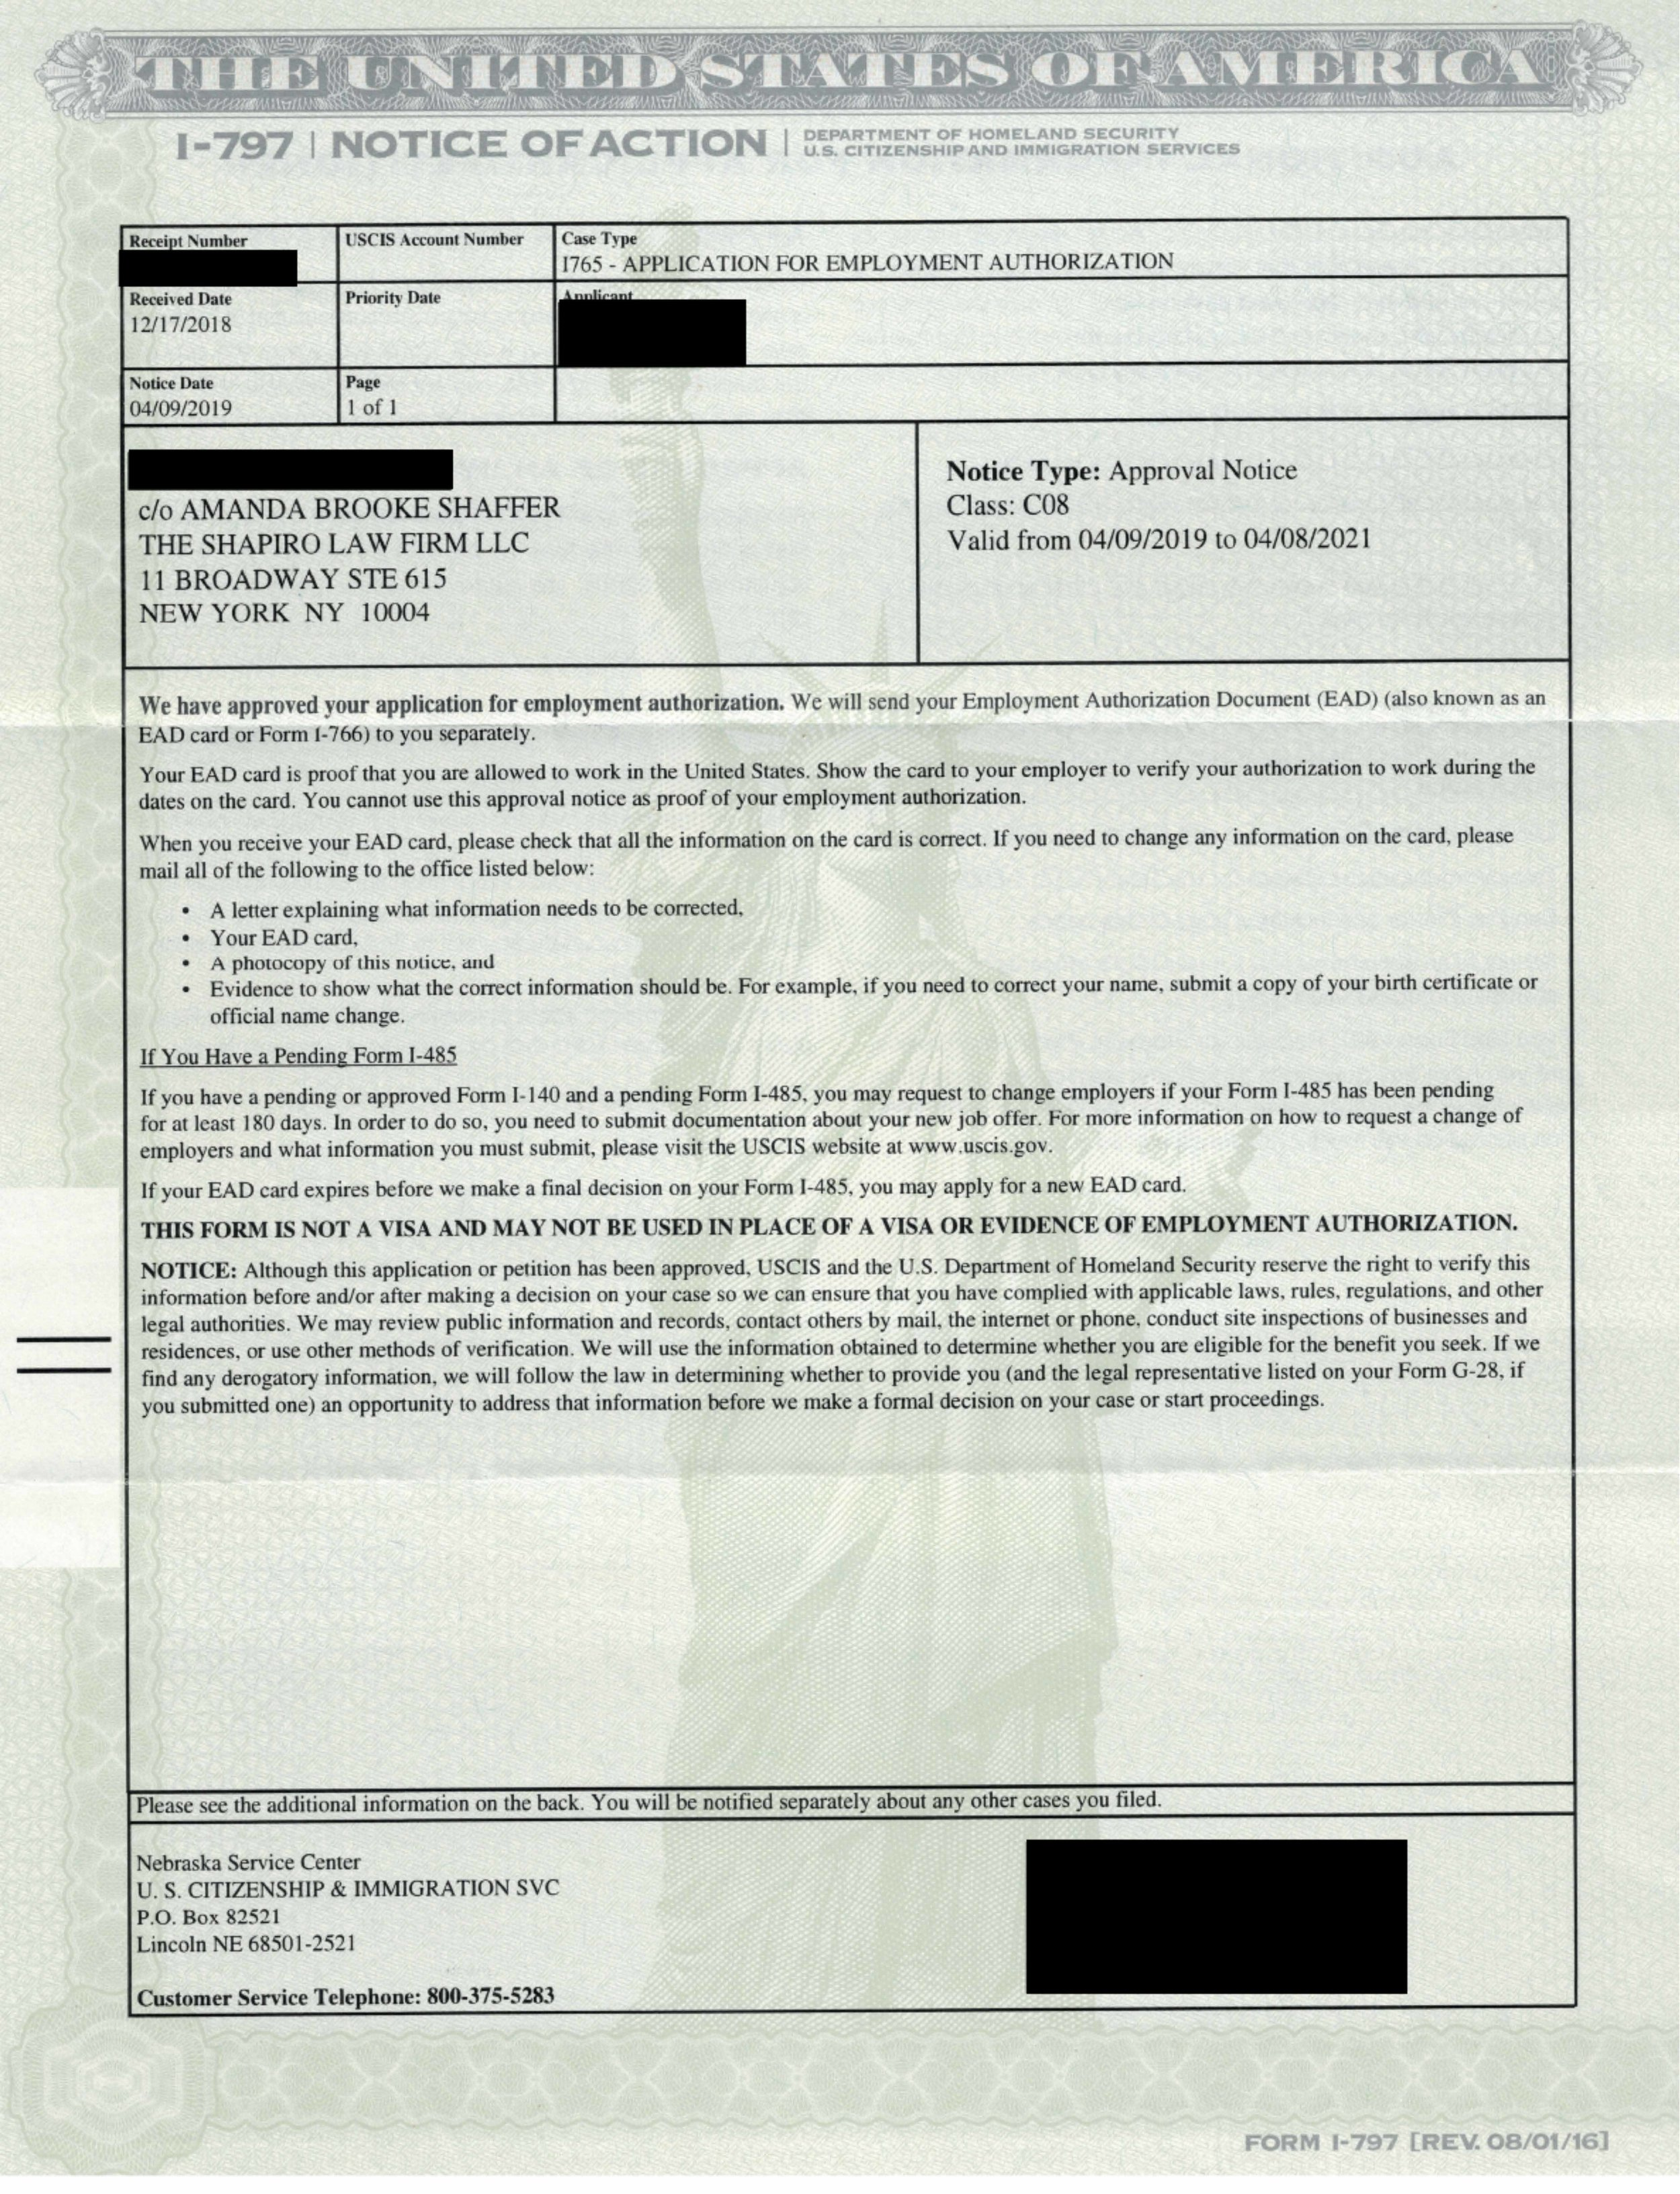 Form I-797, Notice of Action - I-765 Approval Notice (Asylum Applicant)